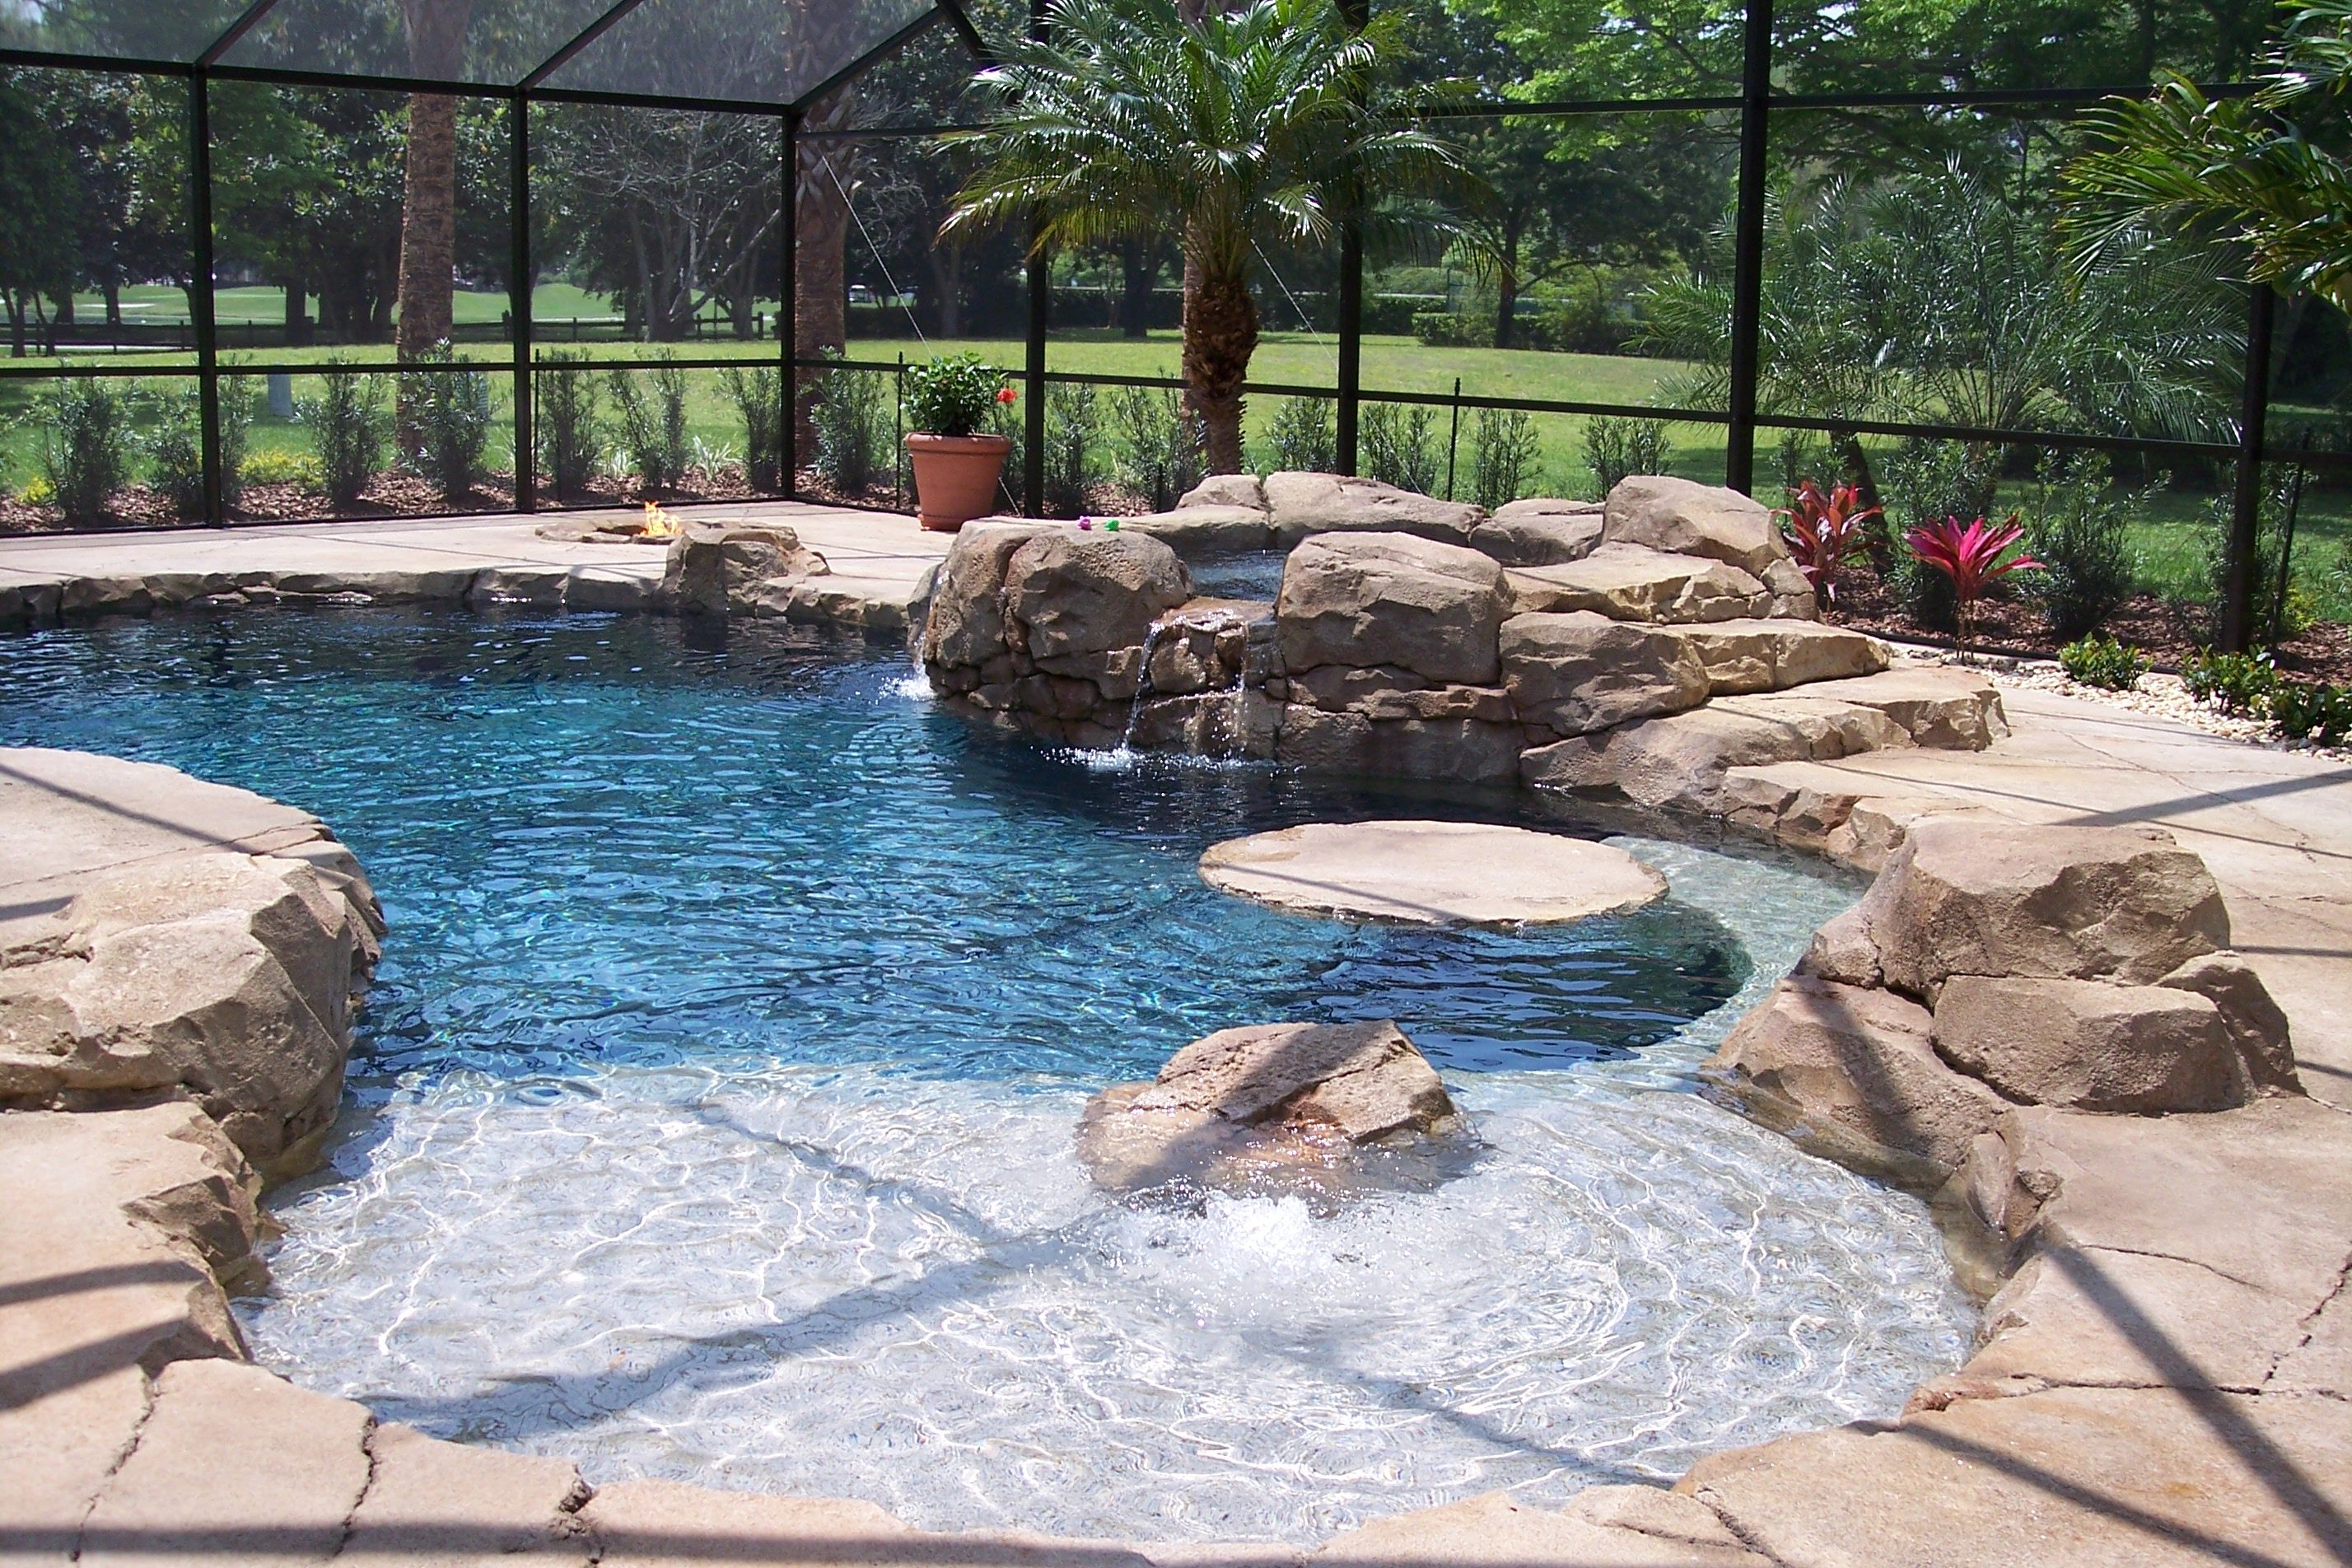 lagoon pool designs lagoon choosing the right interior pool finish can make the pool - Lagoon Swimming Pool Designs